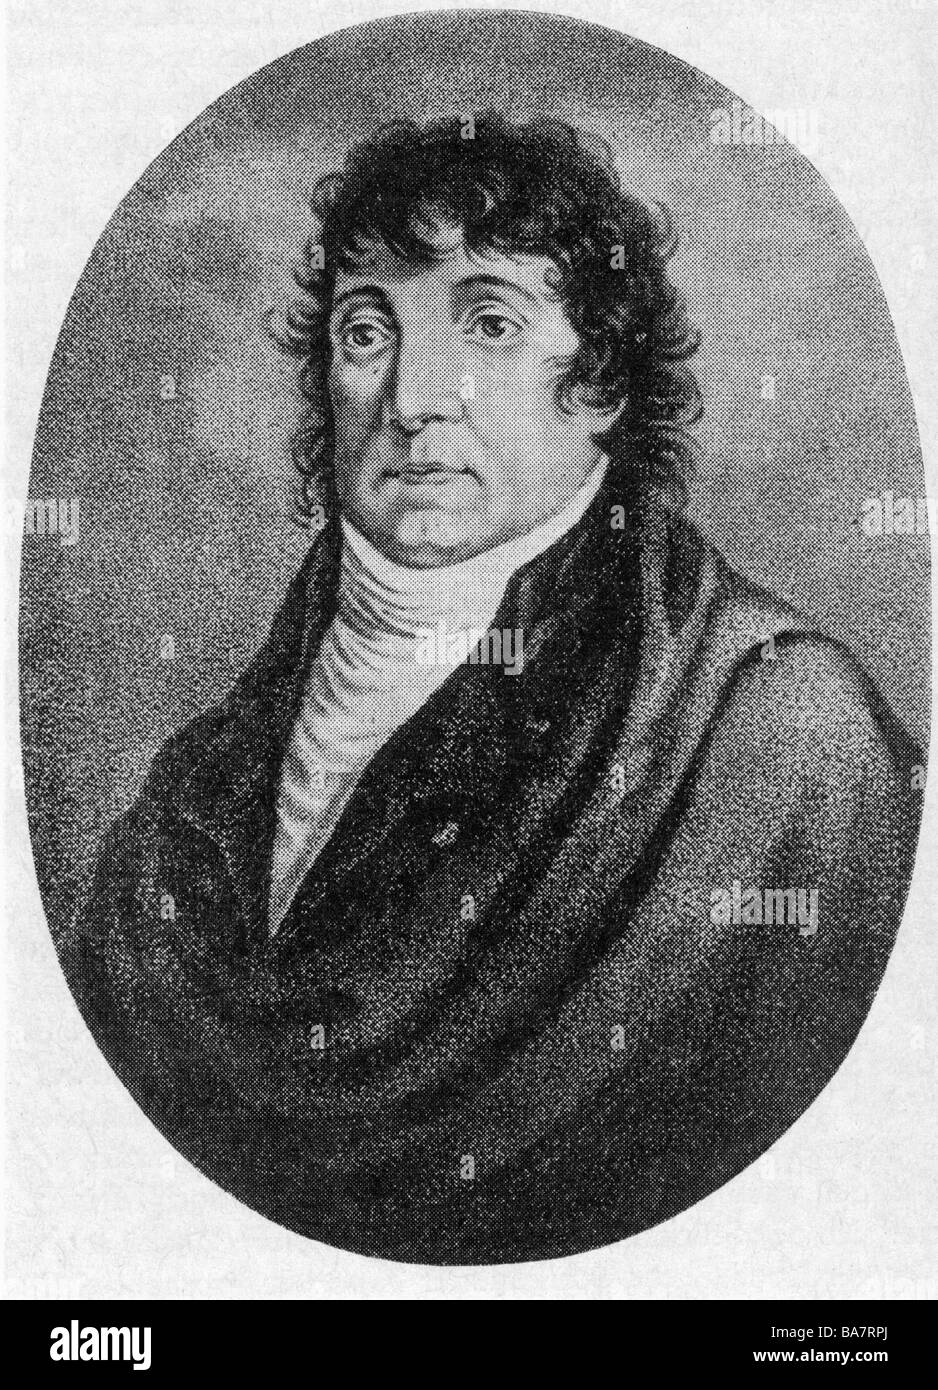 Schikaneder, Emanuel, 1.9.1751 - 21.9.1812, portrait, after contemporary lithograph, , Additional-Rights-Clearances - Stock Image